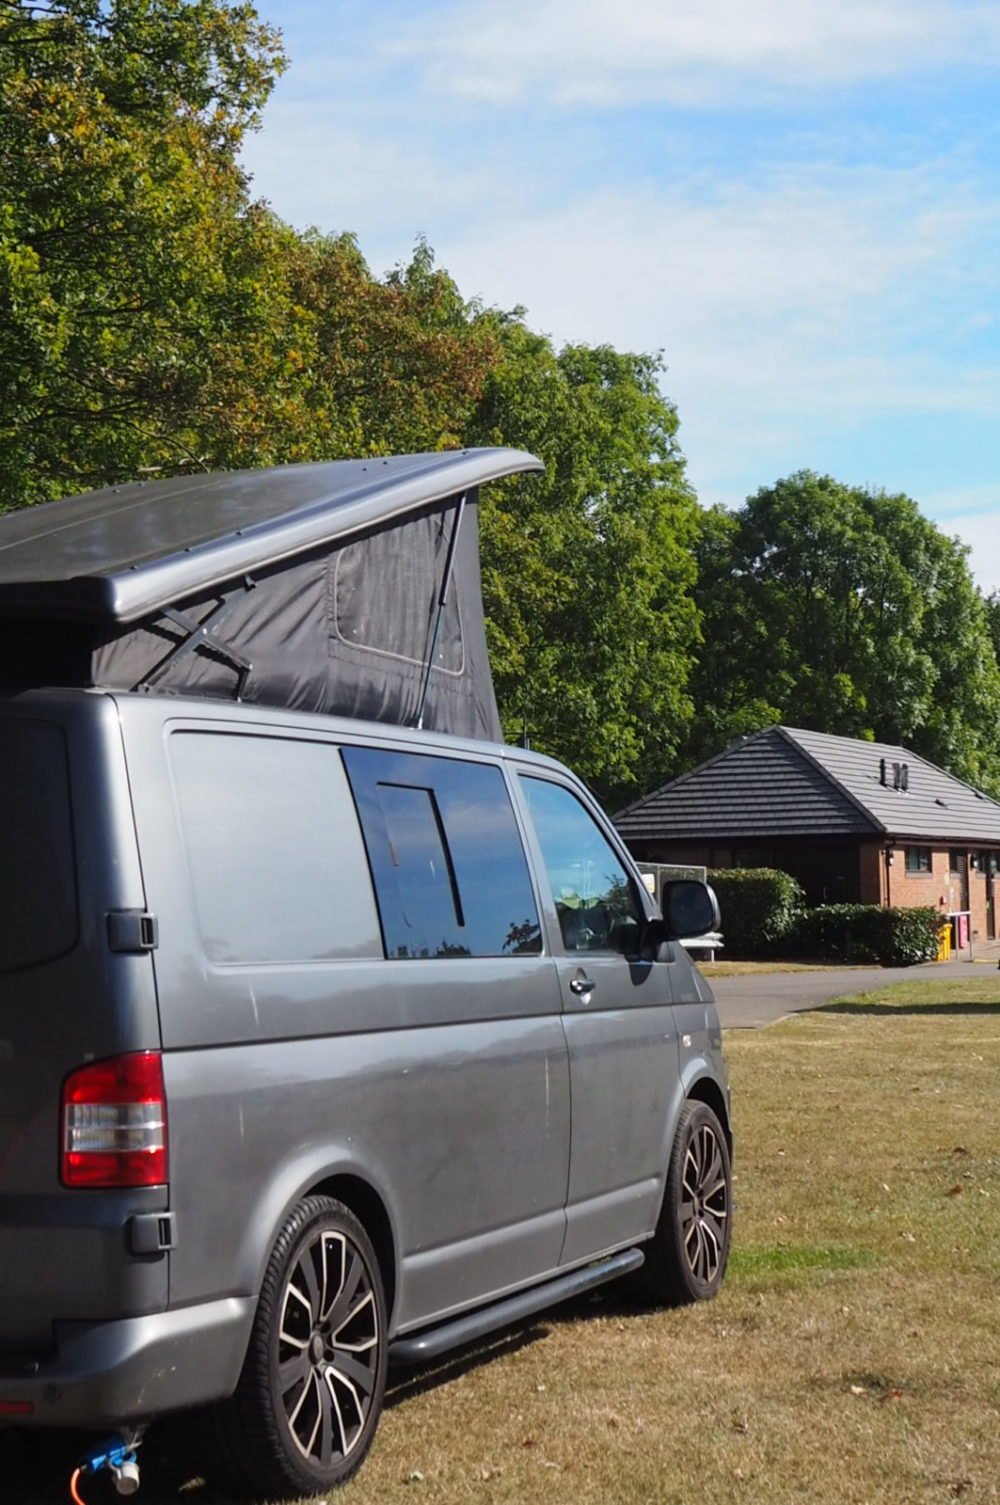 Campervan conversion - how to enjoy a family camper van holiday